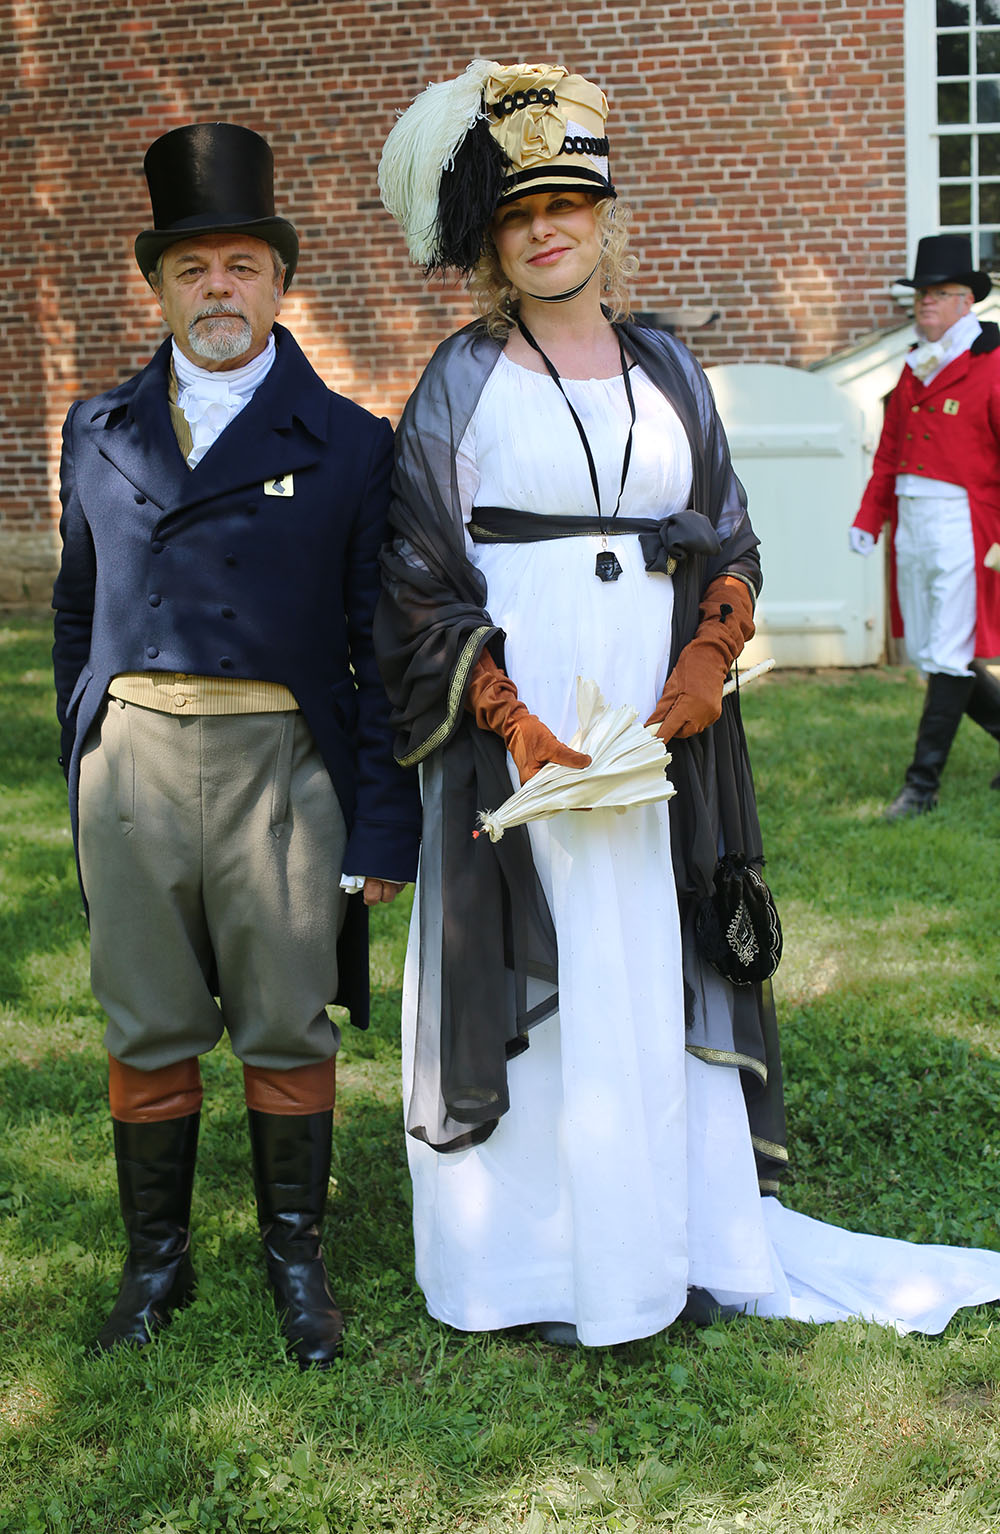 JAF+Handsome+Couple+and+Elegant+Gent+in+Background - Jane Austen Pageant at Locust Grove 2018